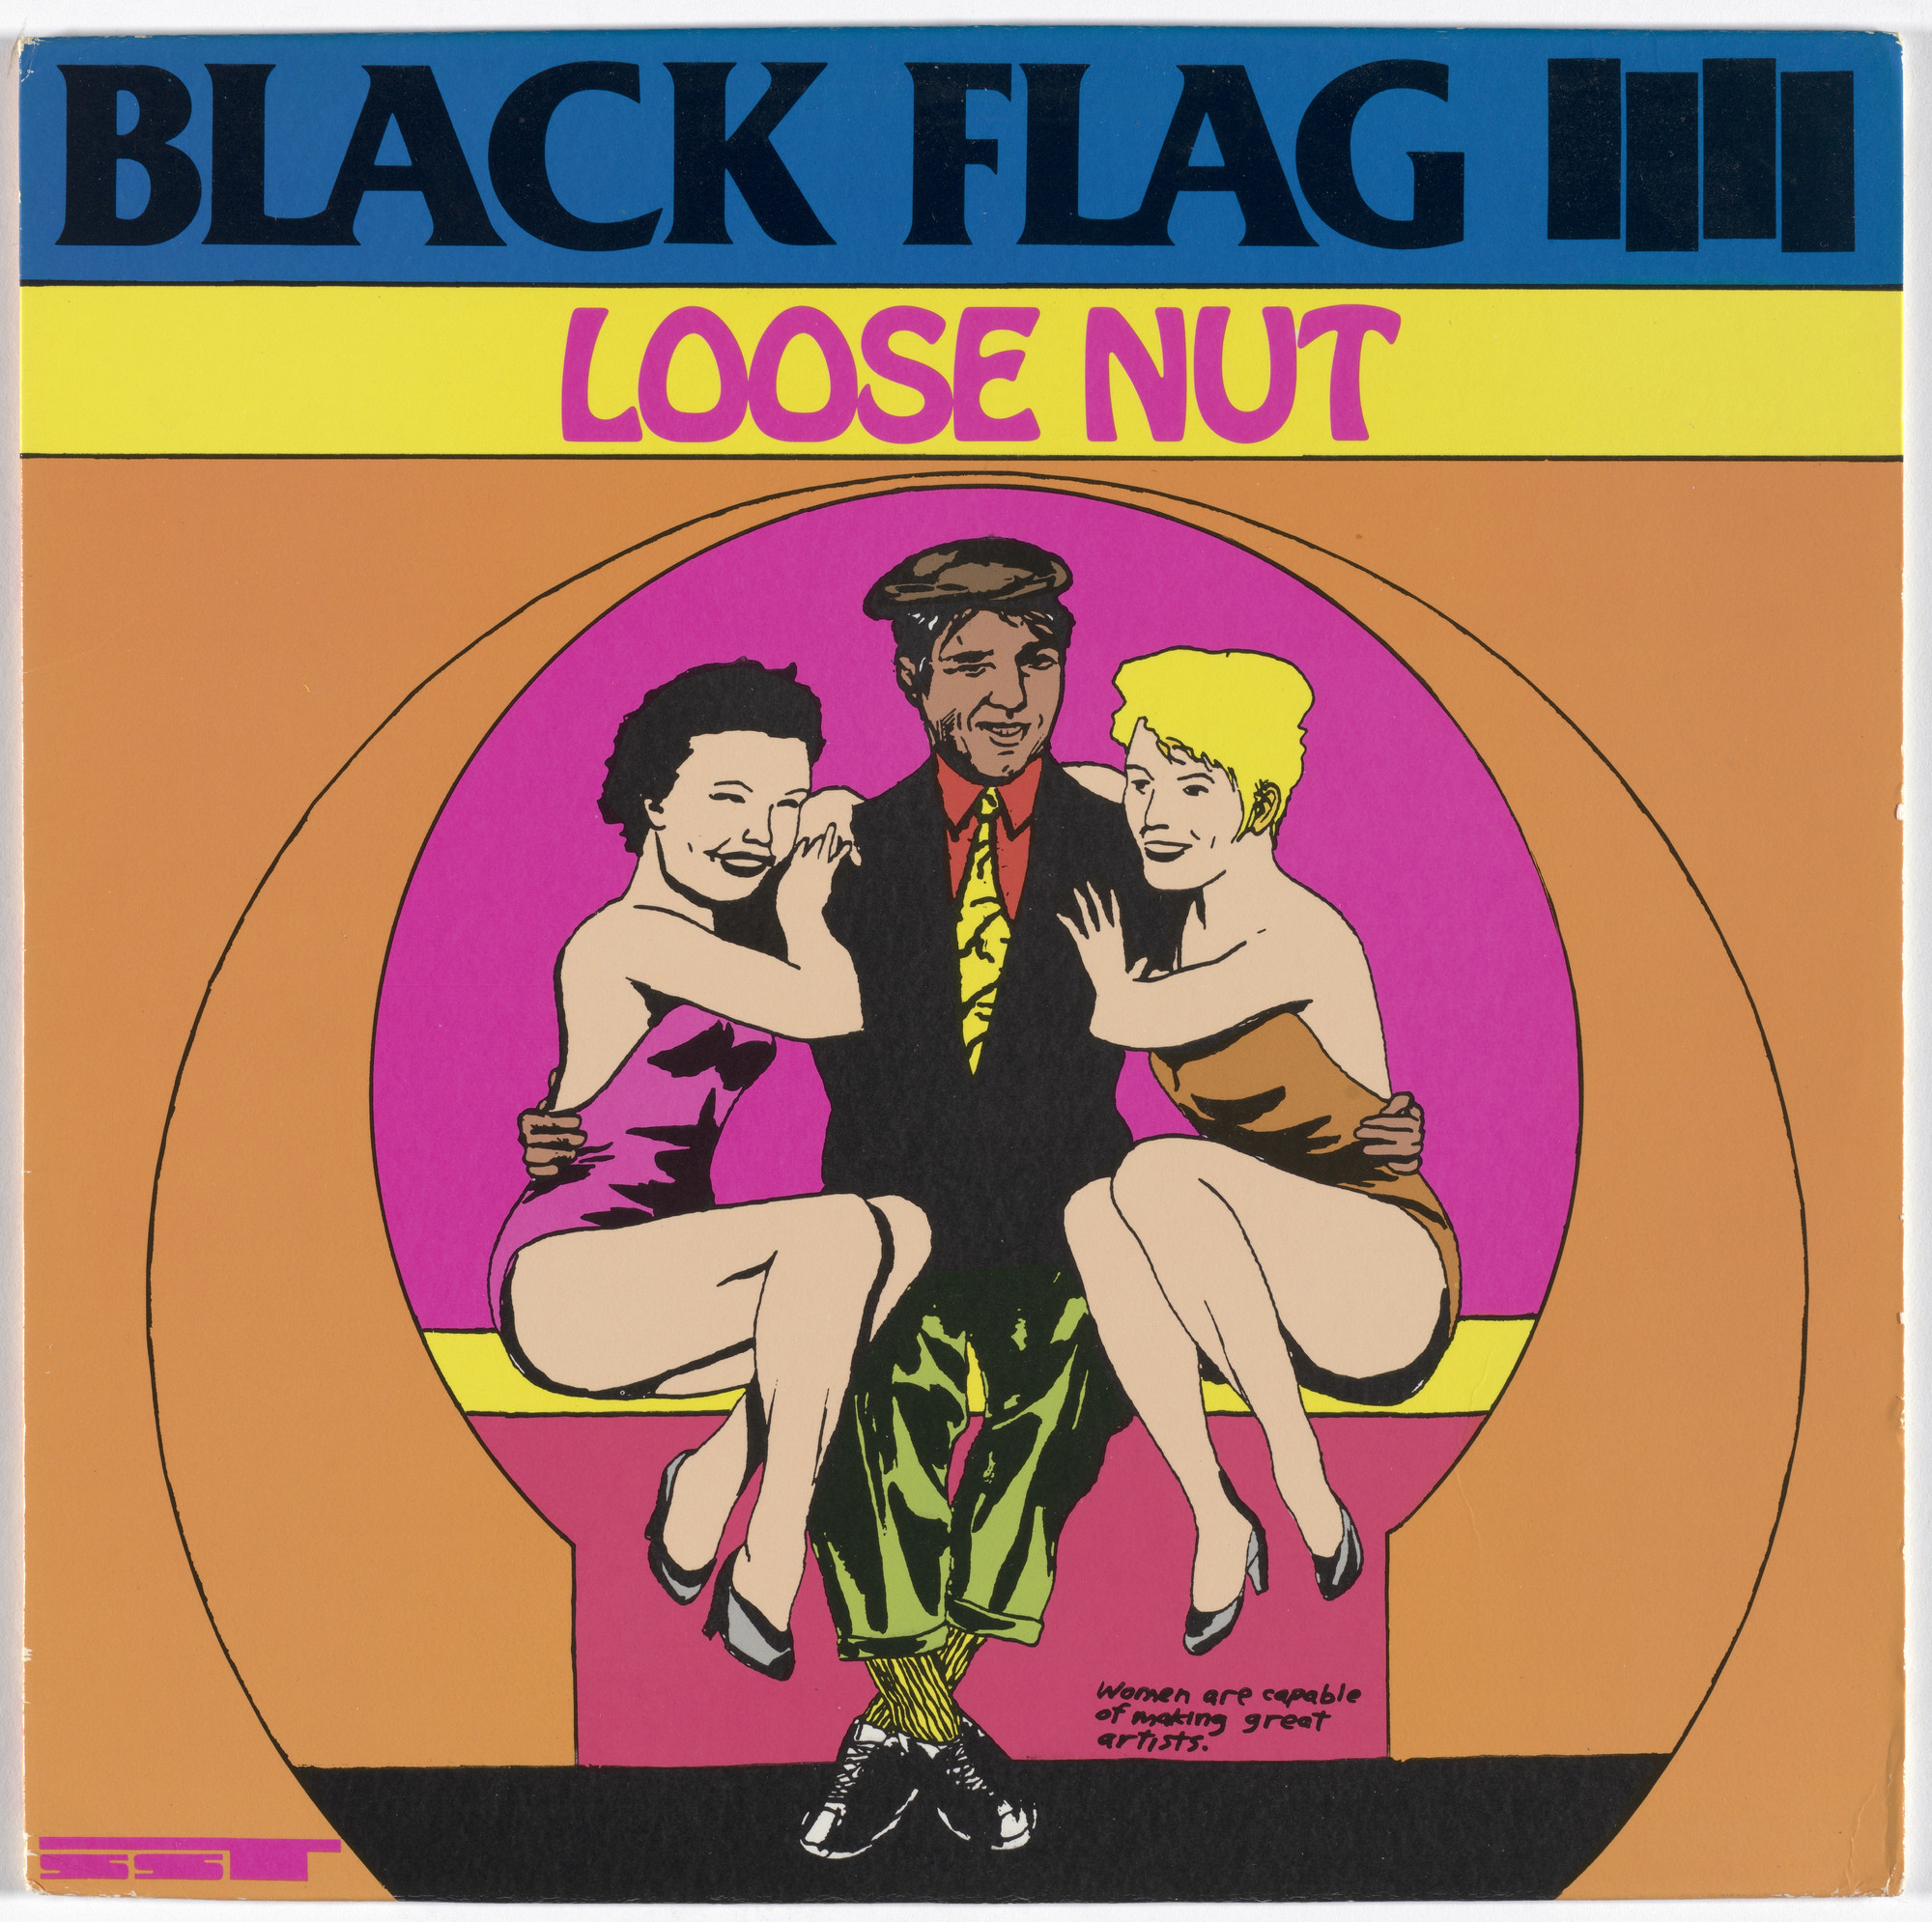 Black Flag, Raymond Pettibon. Loose Nut. 1985